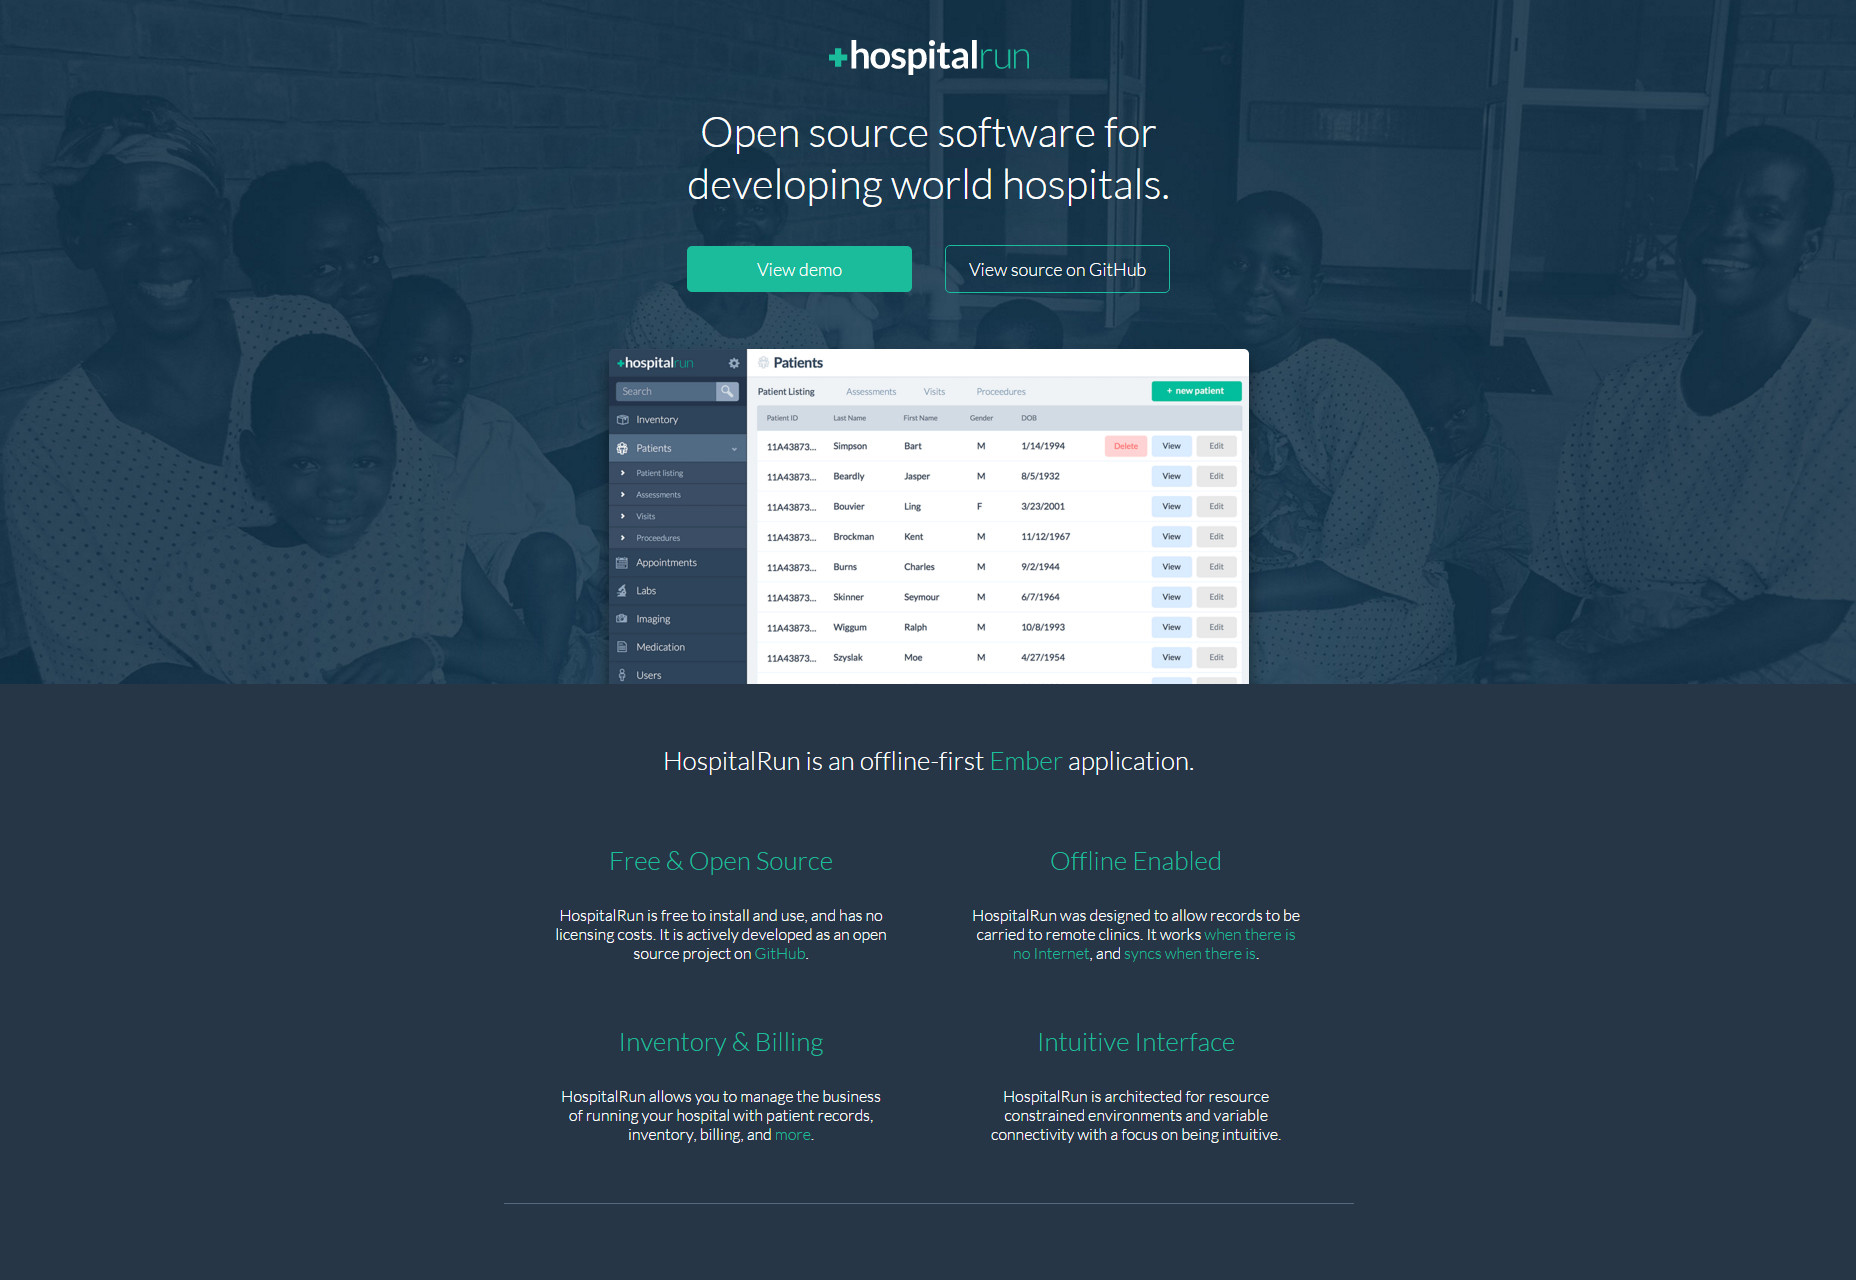 HospitalRun: Open Source Software for Developing World Hospitals